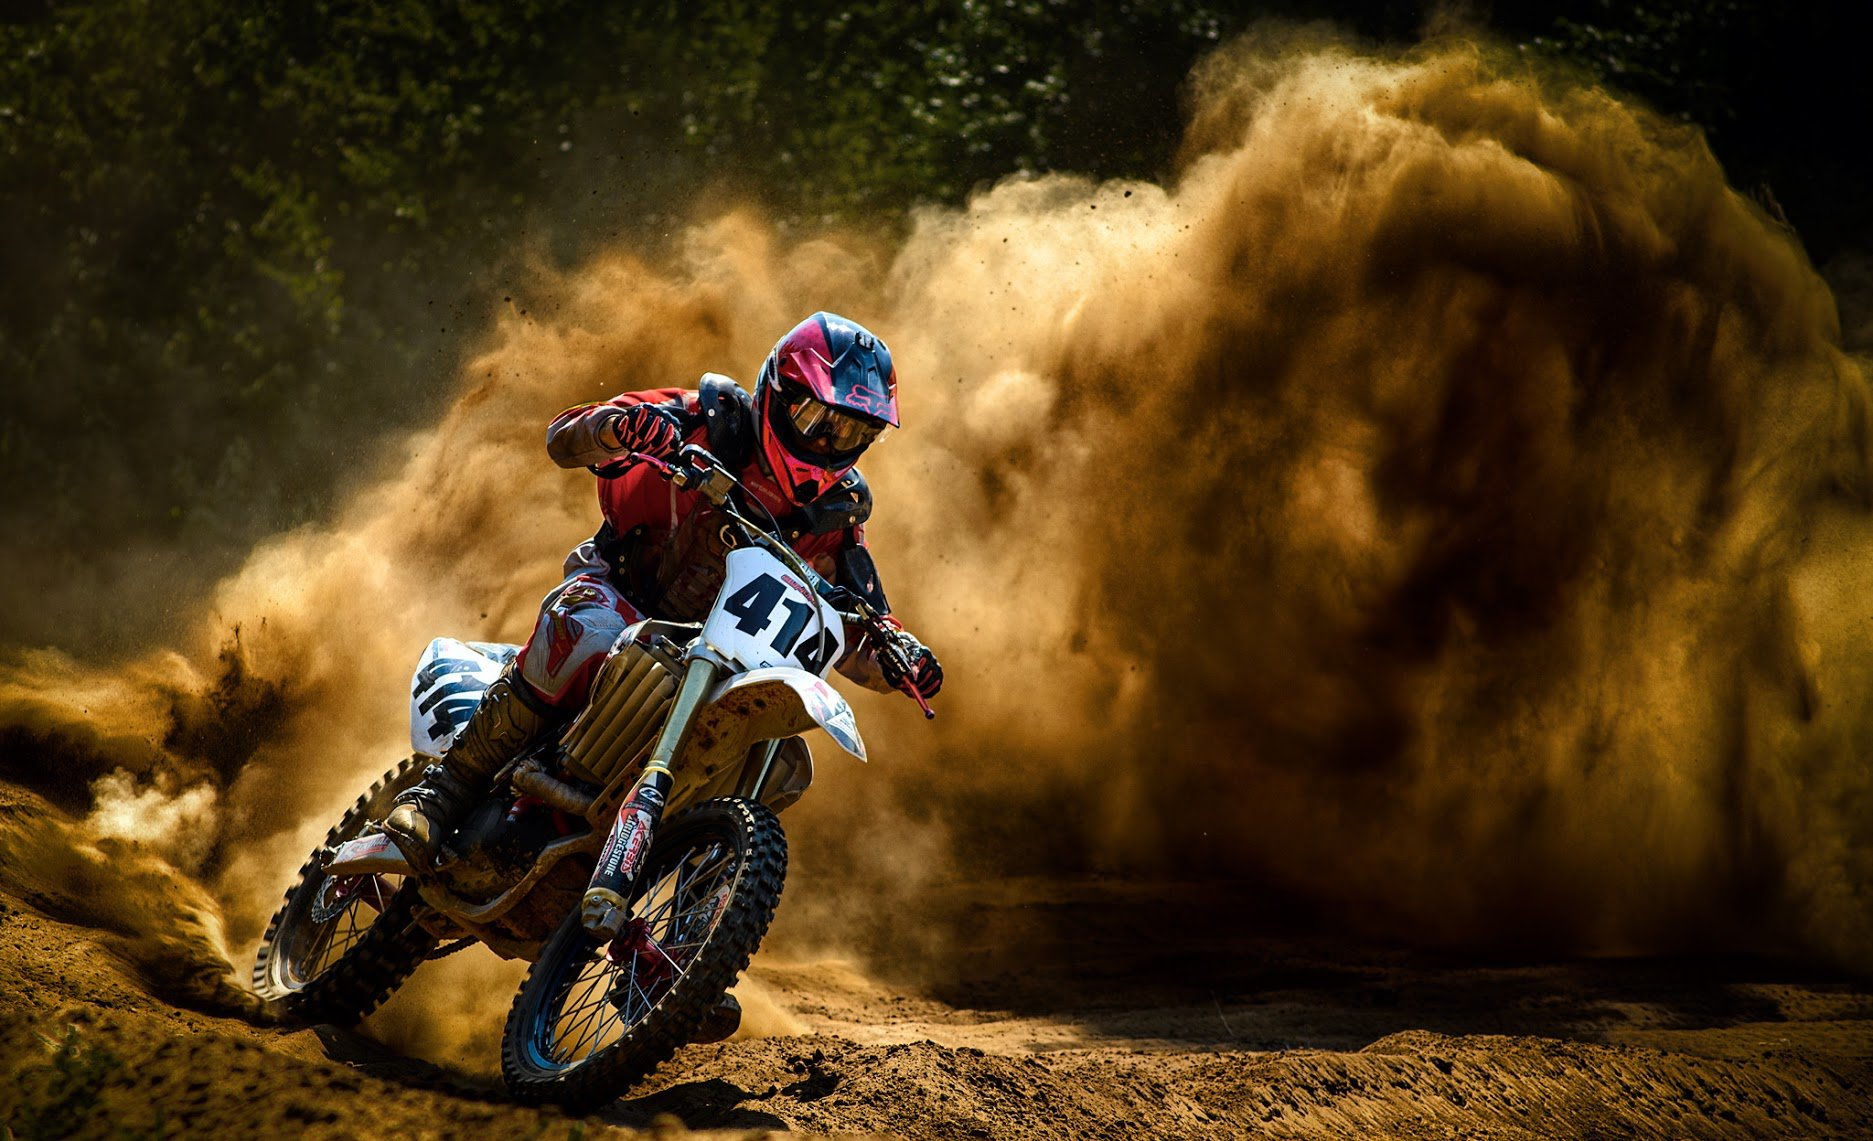 Dirt Bikes Hd Wallpapers: 16 Adventure Sports You Should Try Before You Turn 30